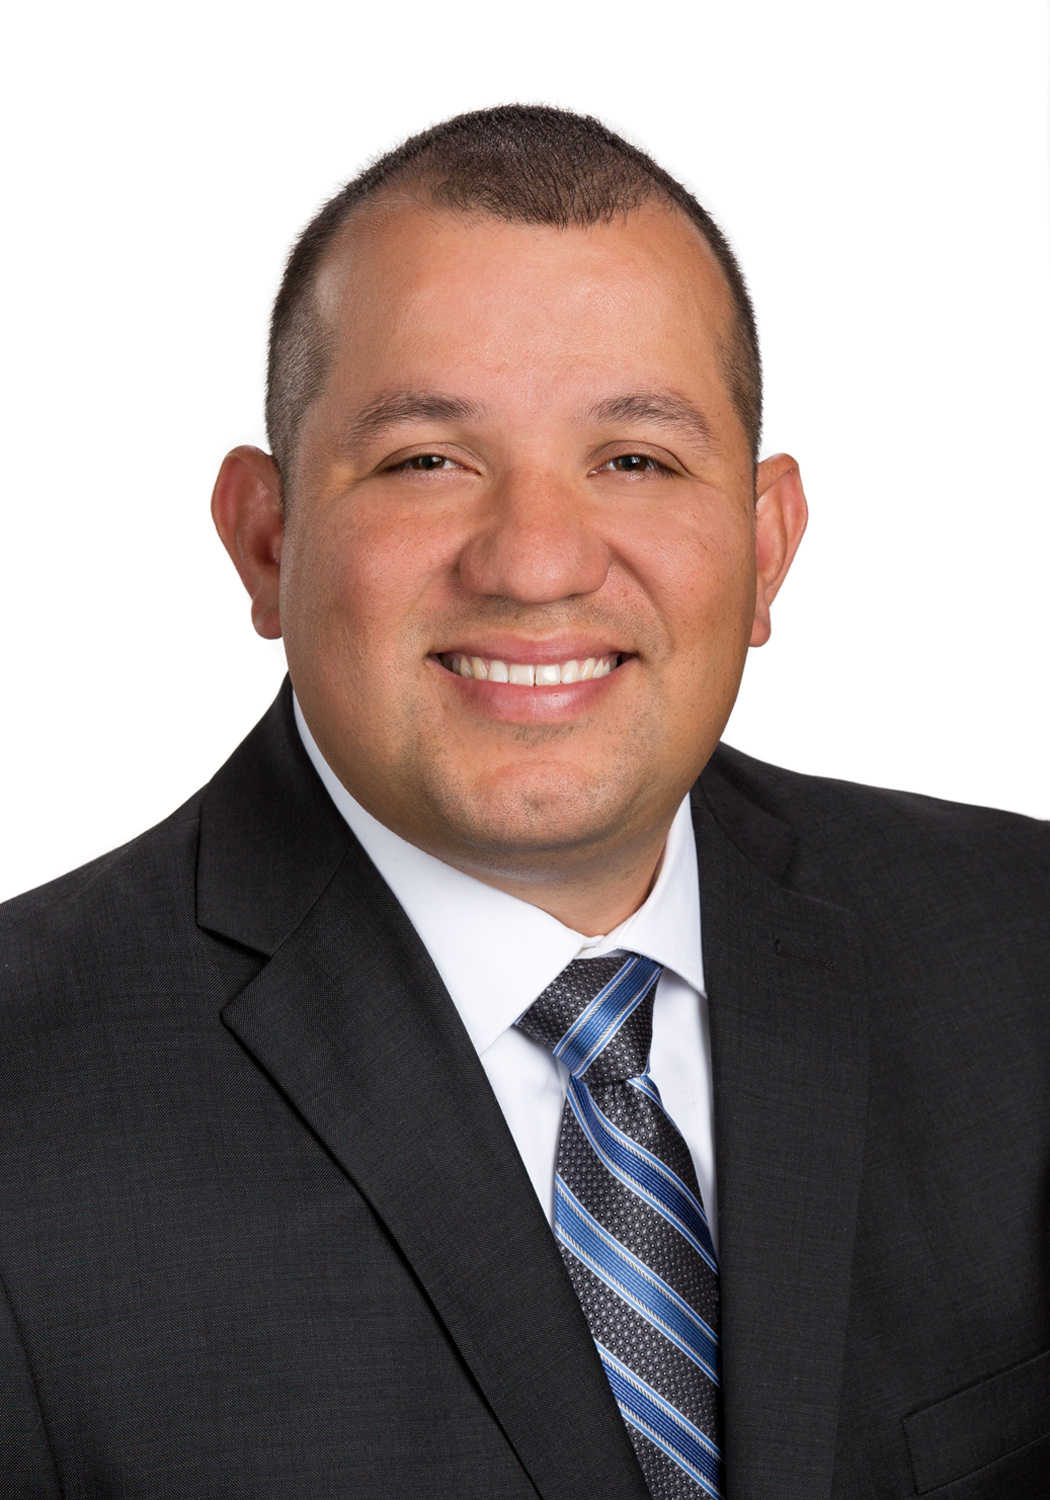 David Estrada, Customer Service Representative, Ted Todd Insurance Agency